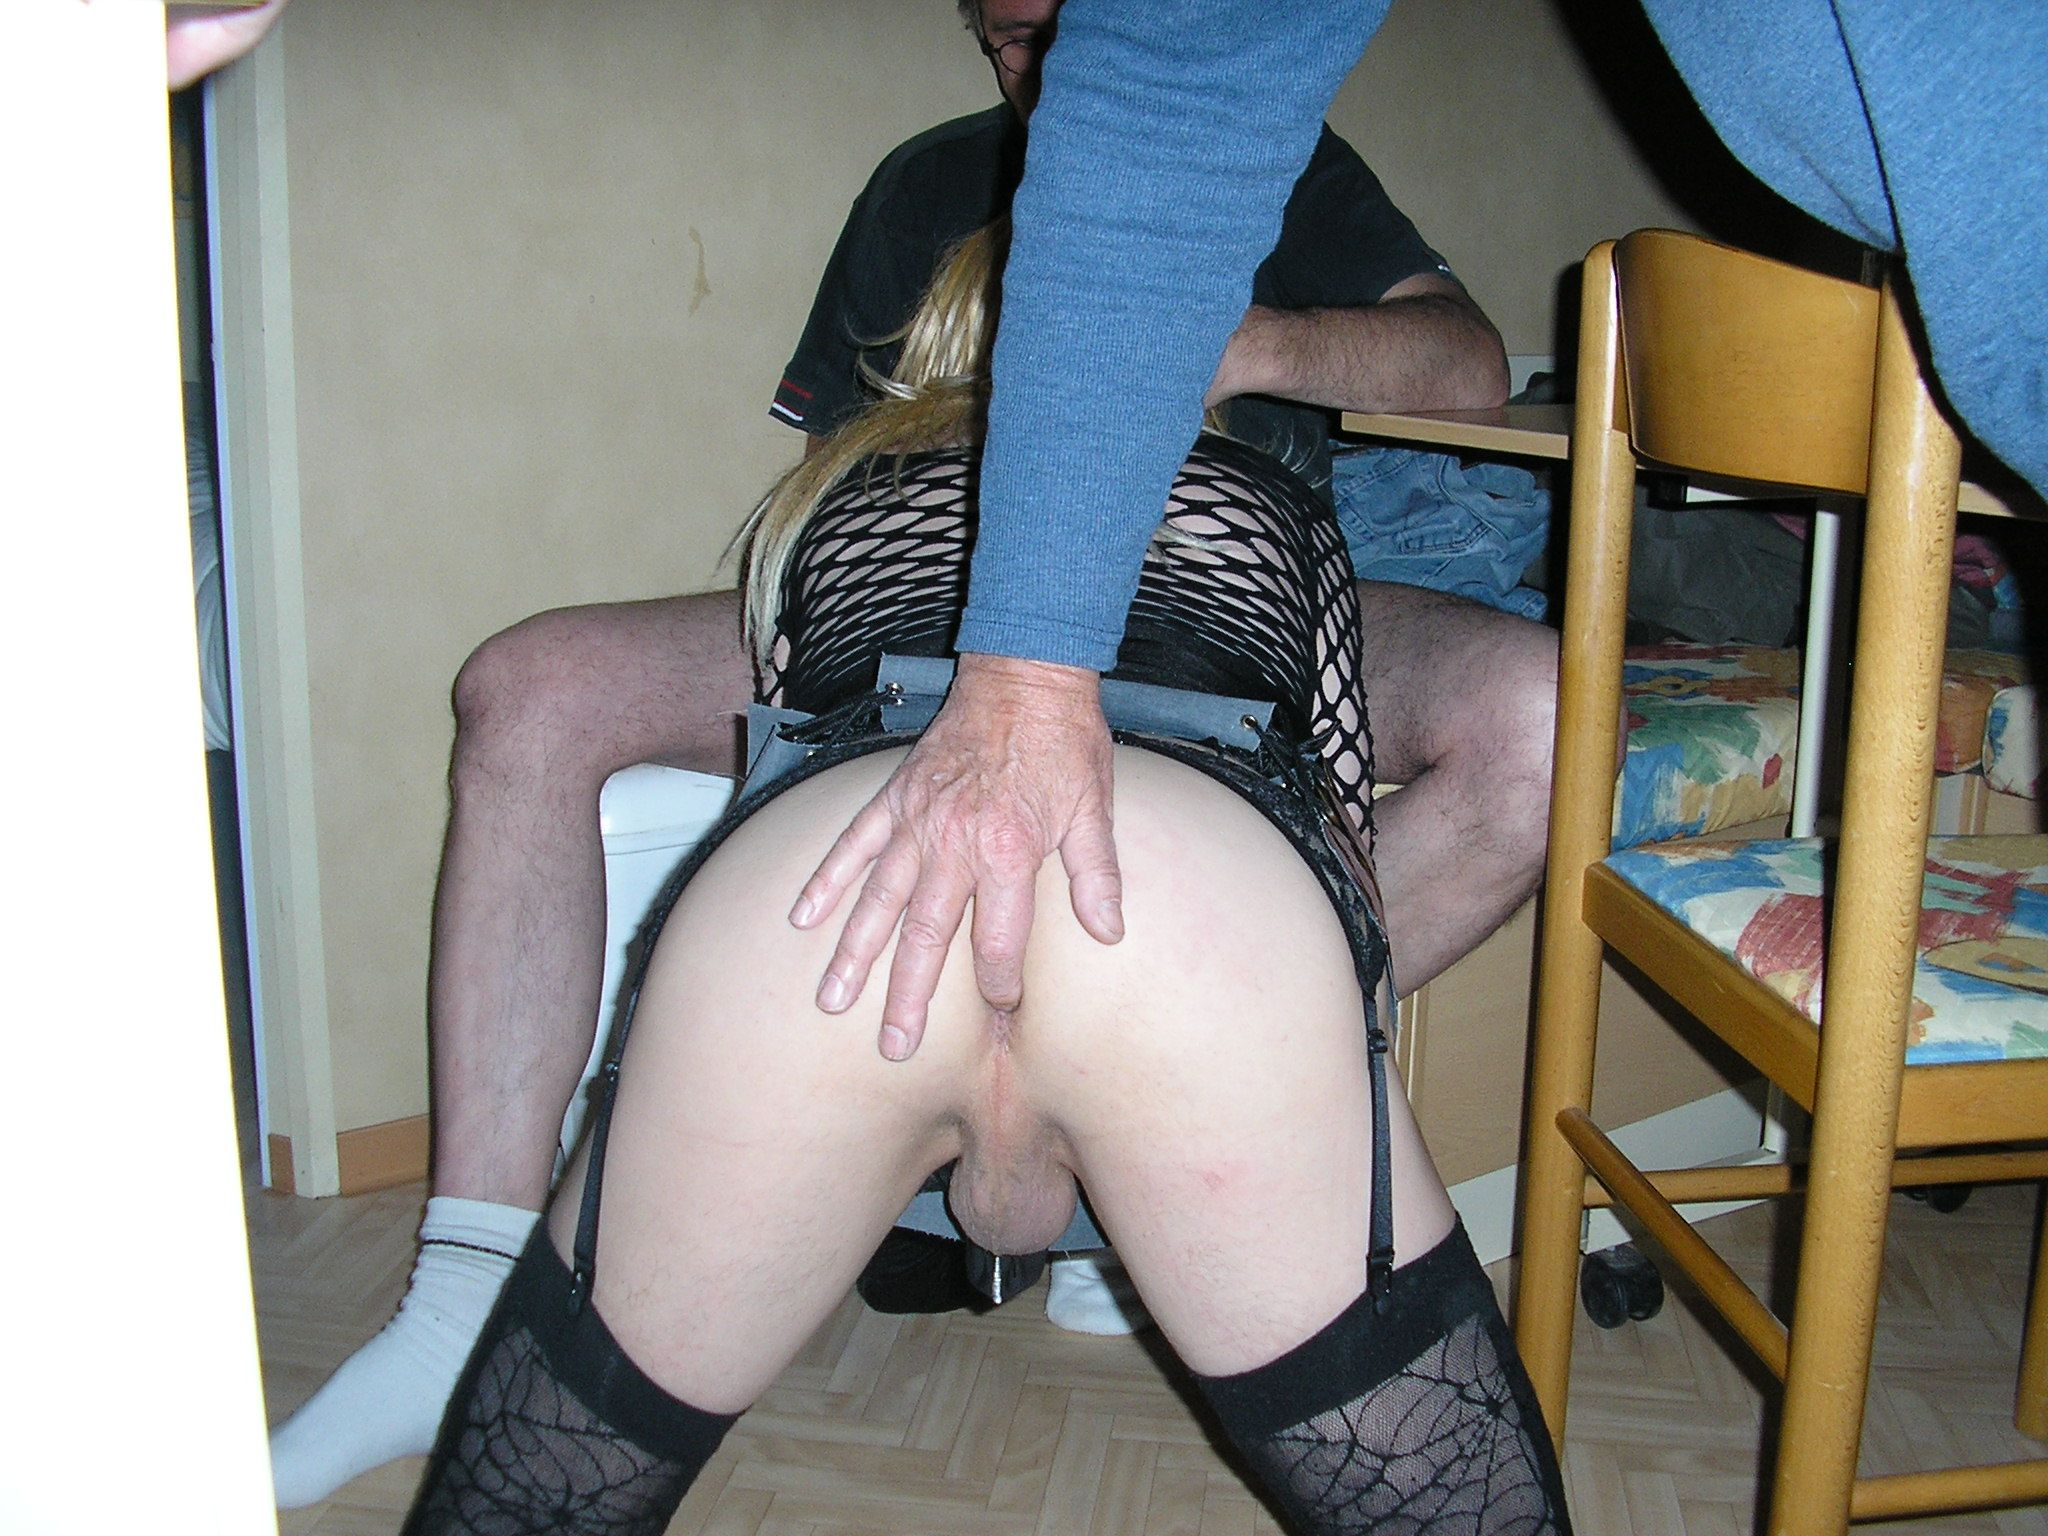 salope sissy vide couille